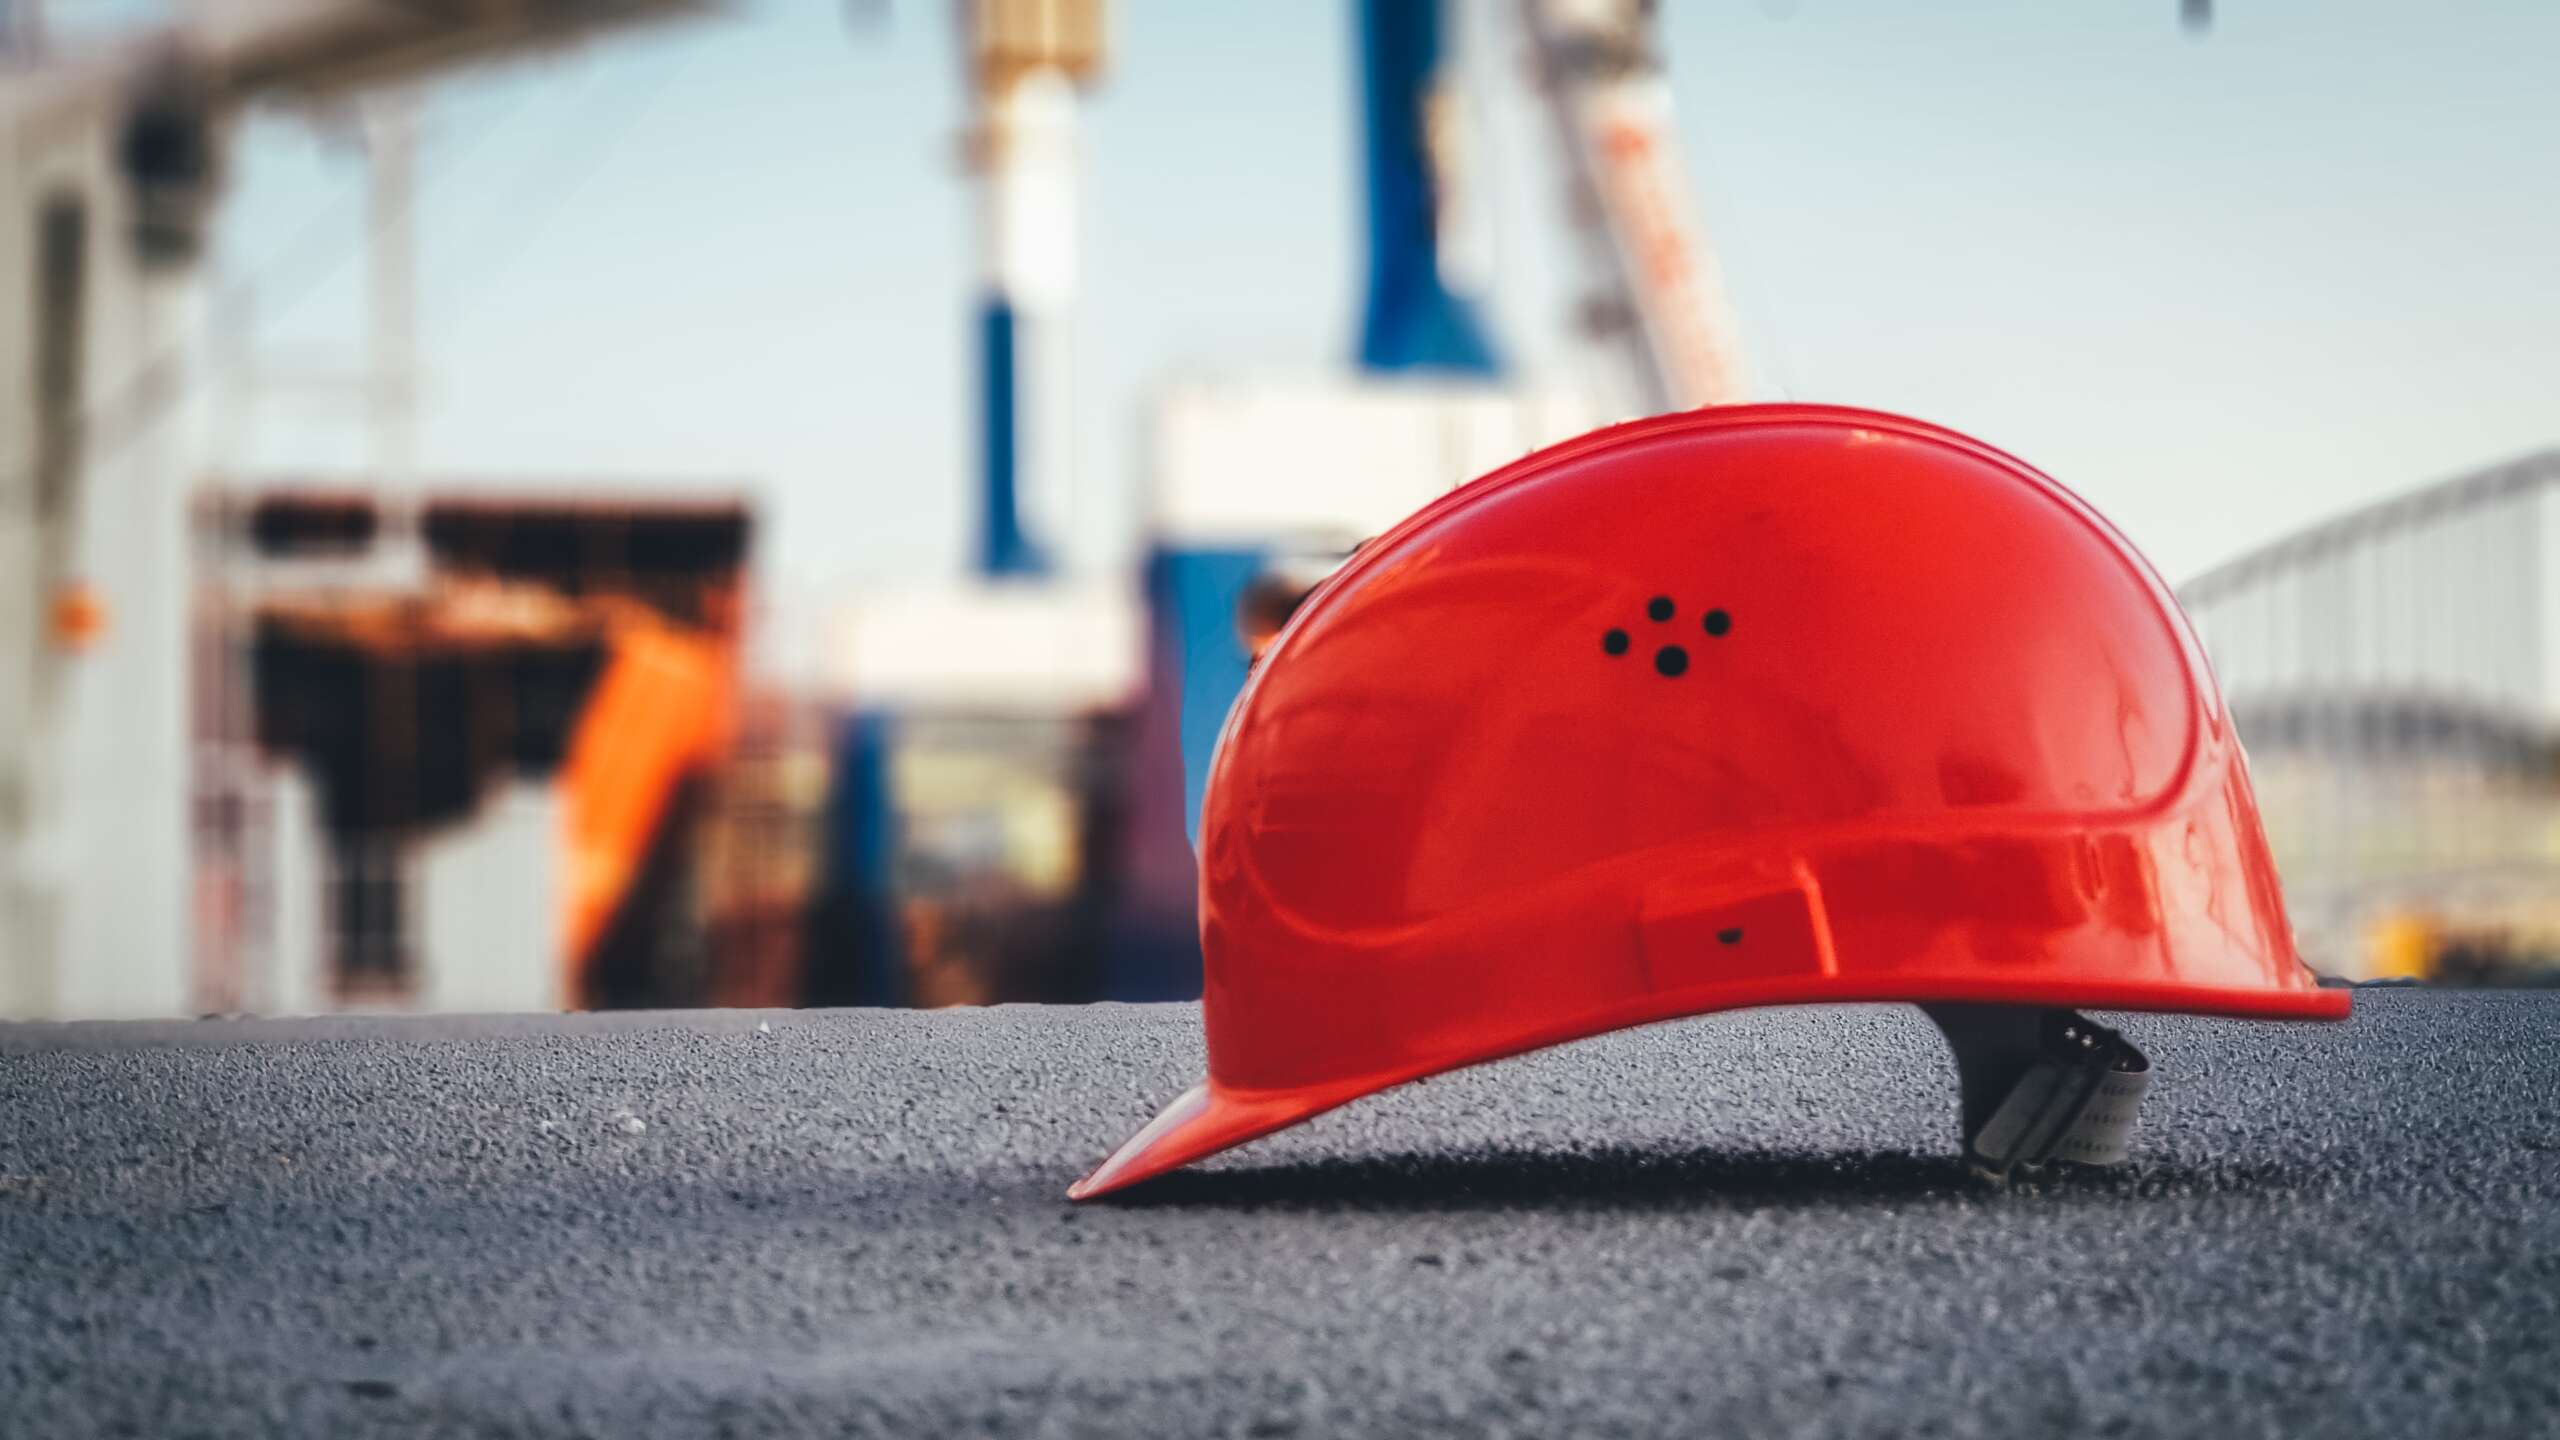 NSW GOVERNMENT'S CONSTRUCTION ACTIVITY PAUSE